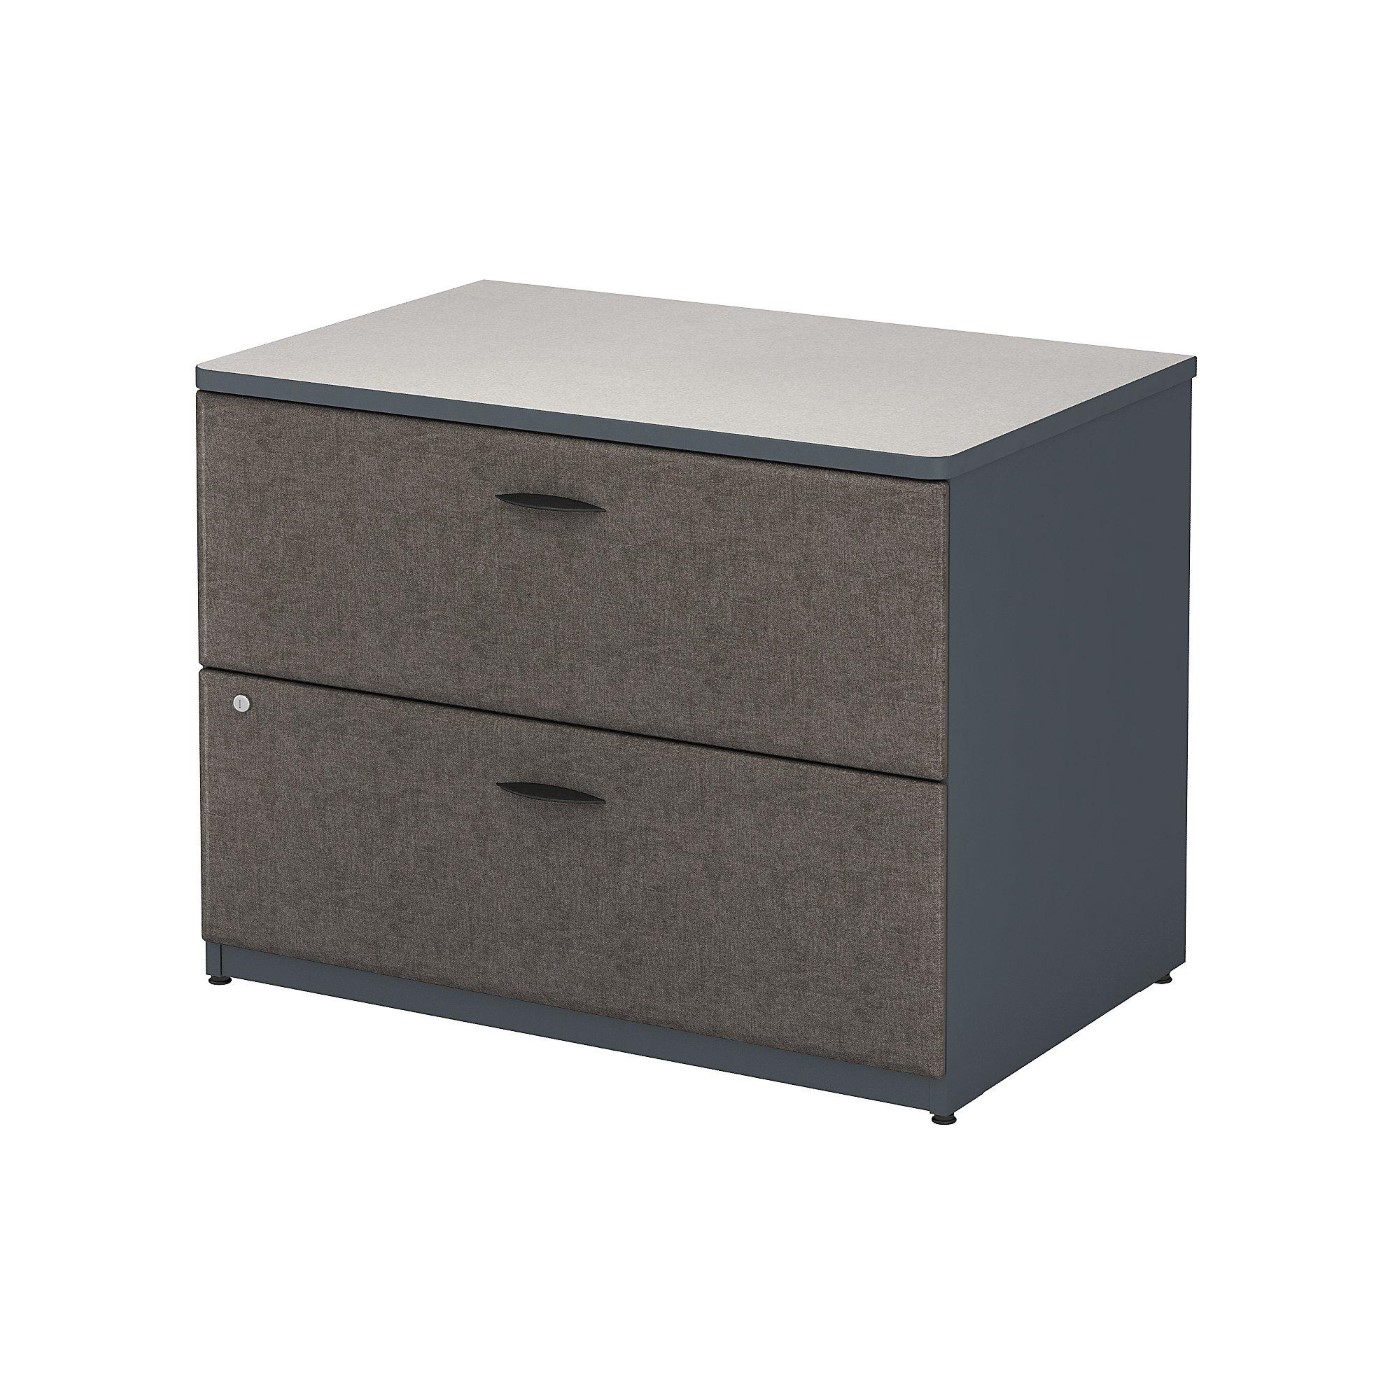 <font color=#c60><b>BUSH BUSINESS FURNITURE SERIES A 36W LATERAL FILE CABINET. FREE SHIPPING</font></b></font>